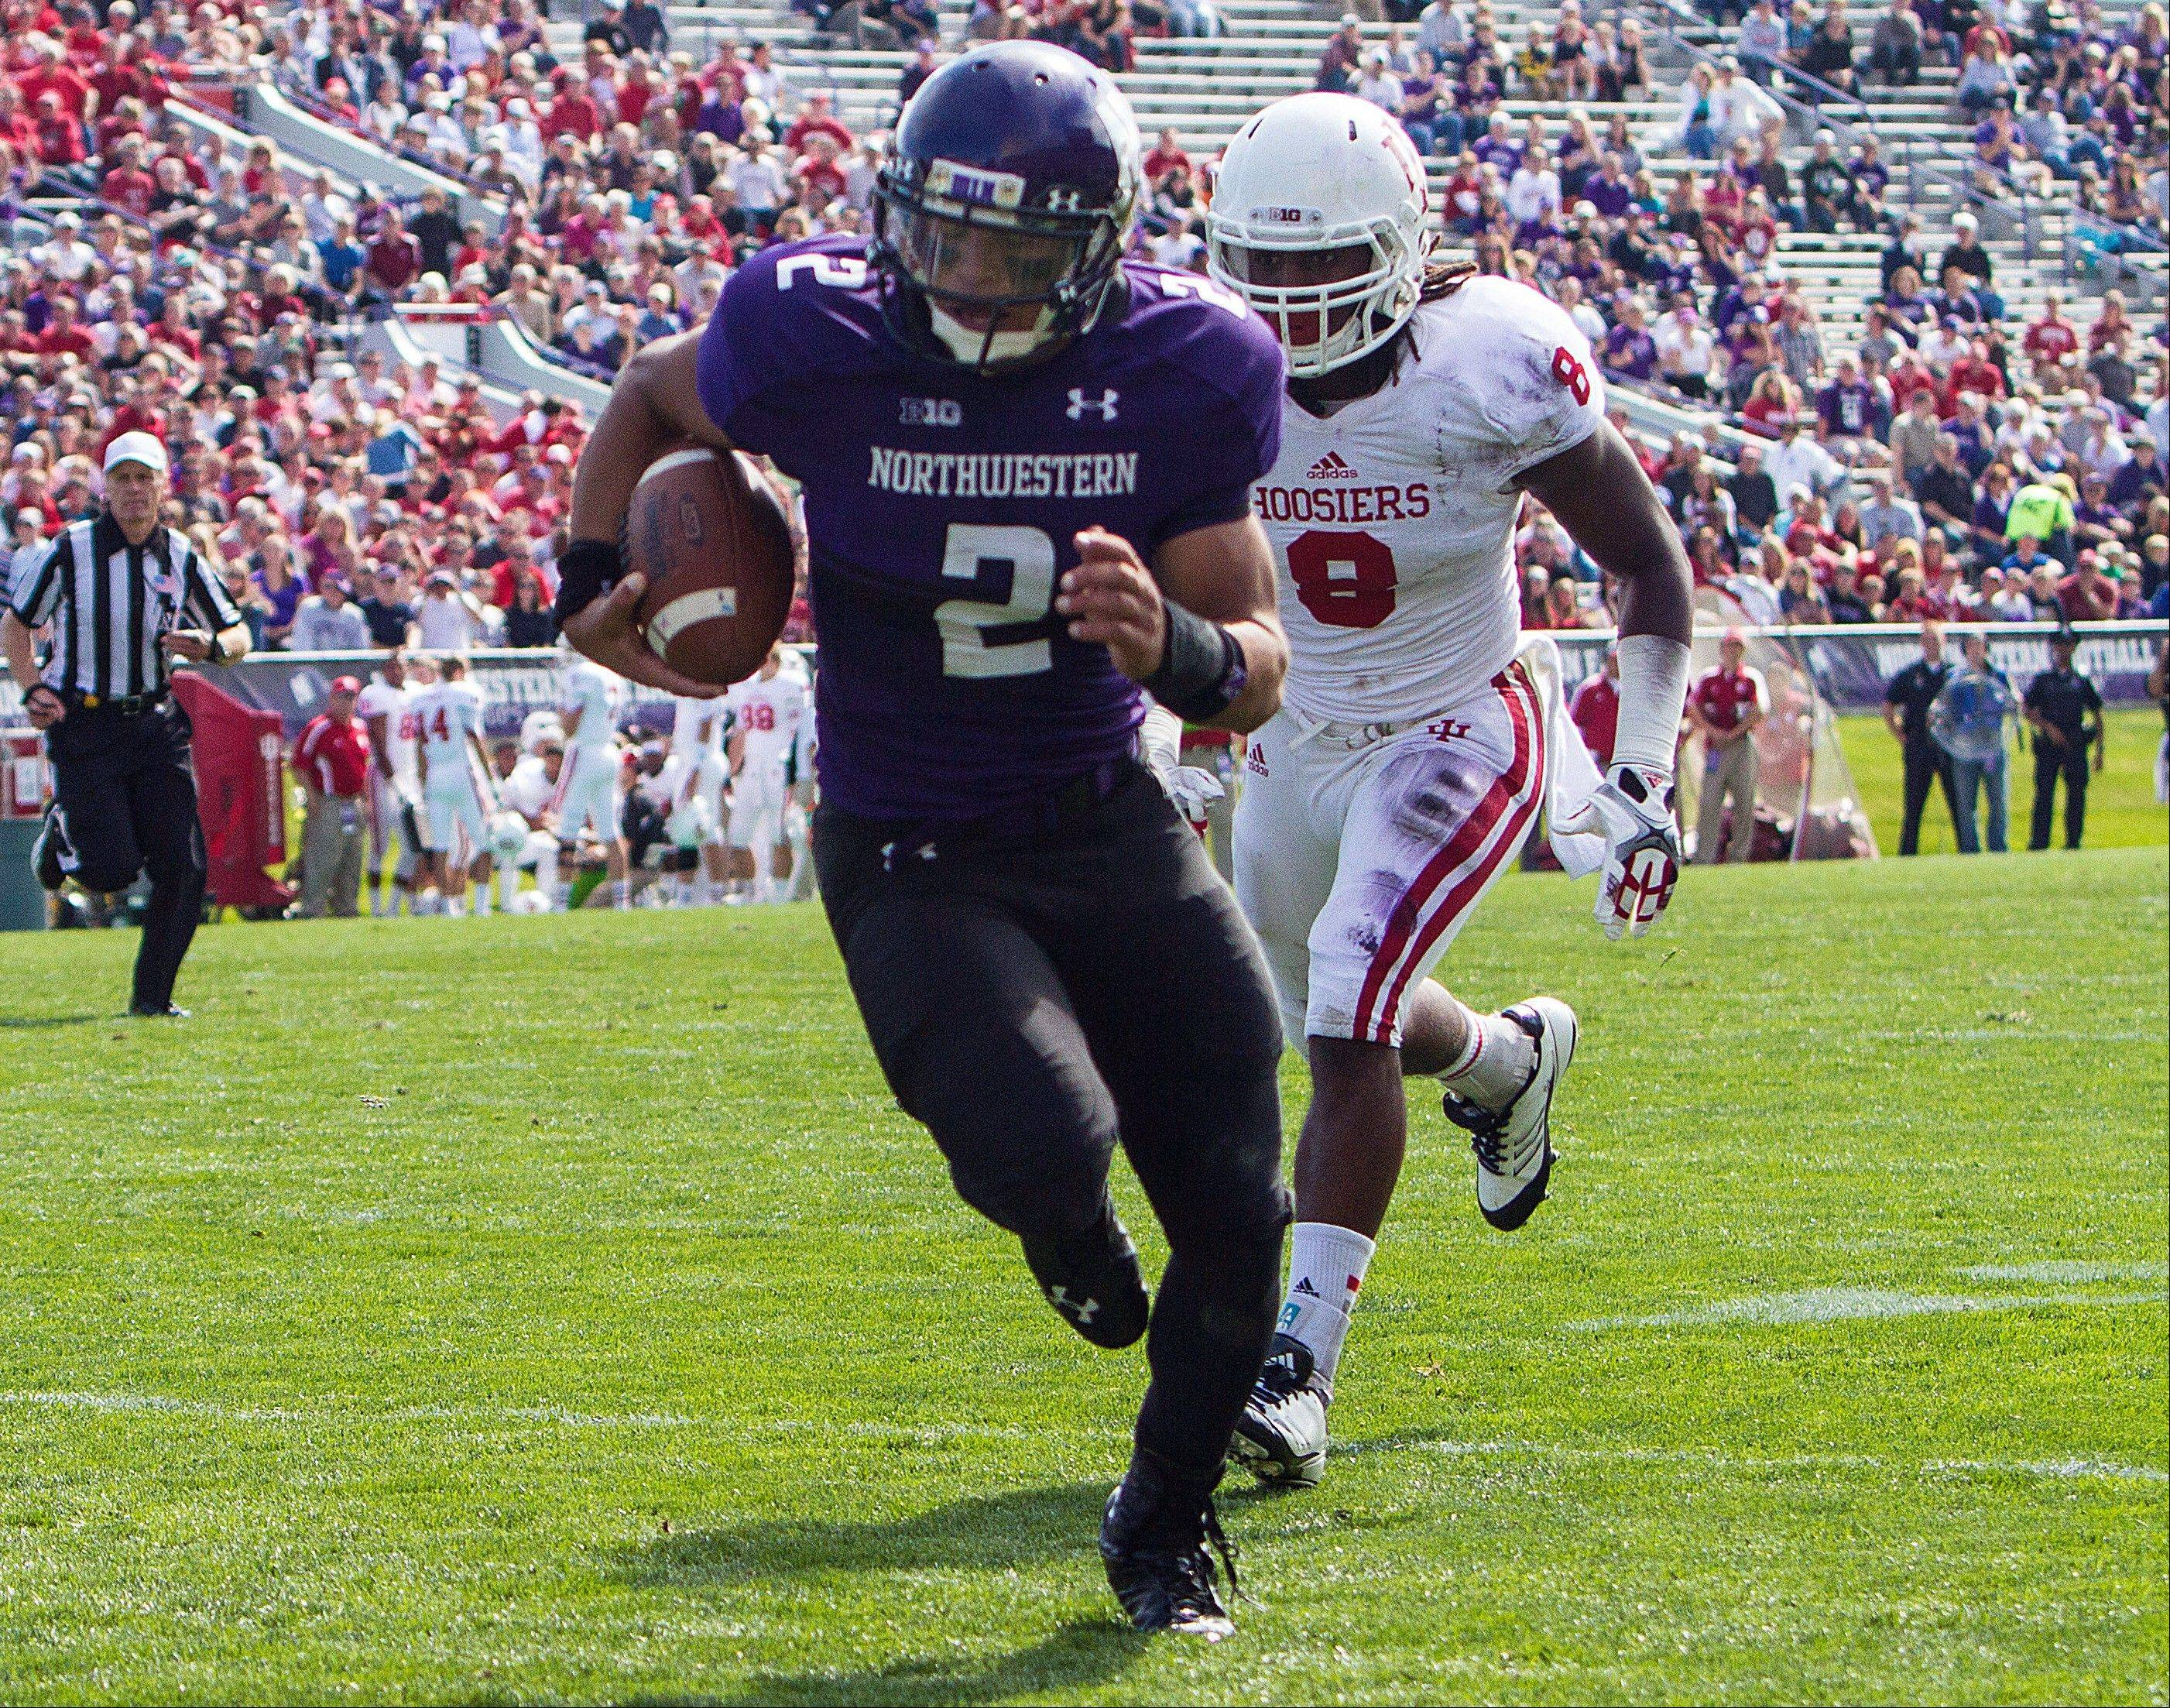 Northwestern's Kain Kolter runs for a touchdown against Indiana Saturday during the second quarter in Evanston.